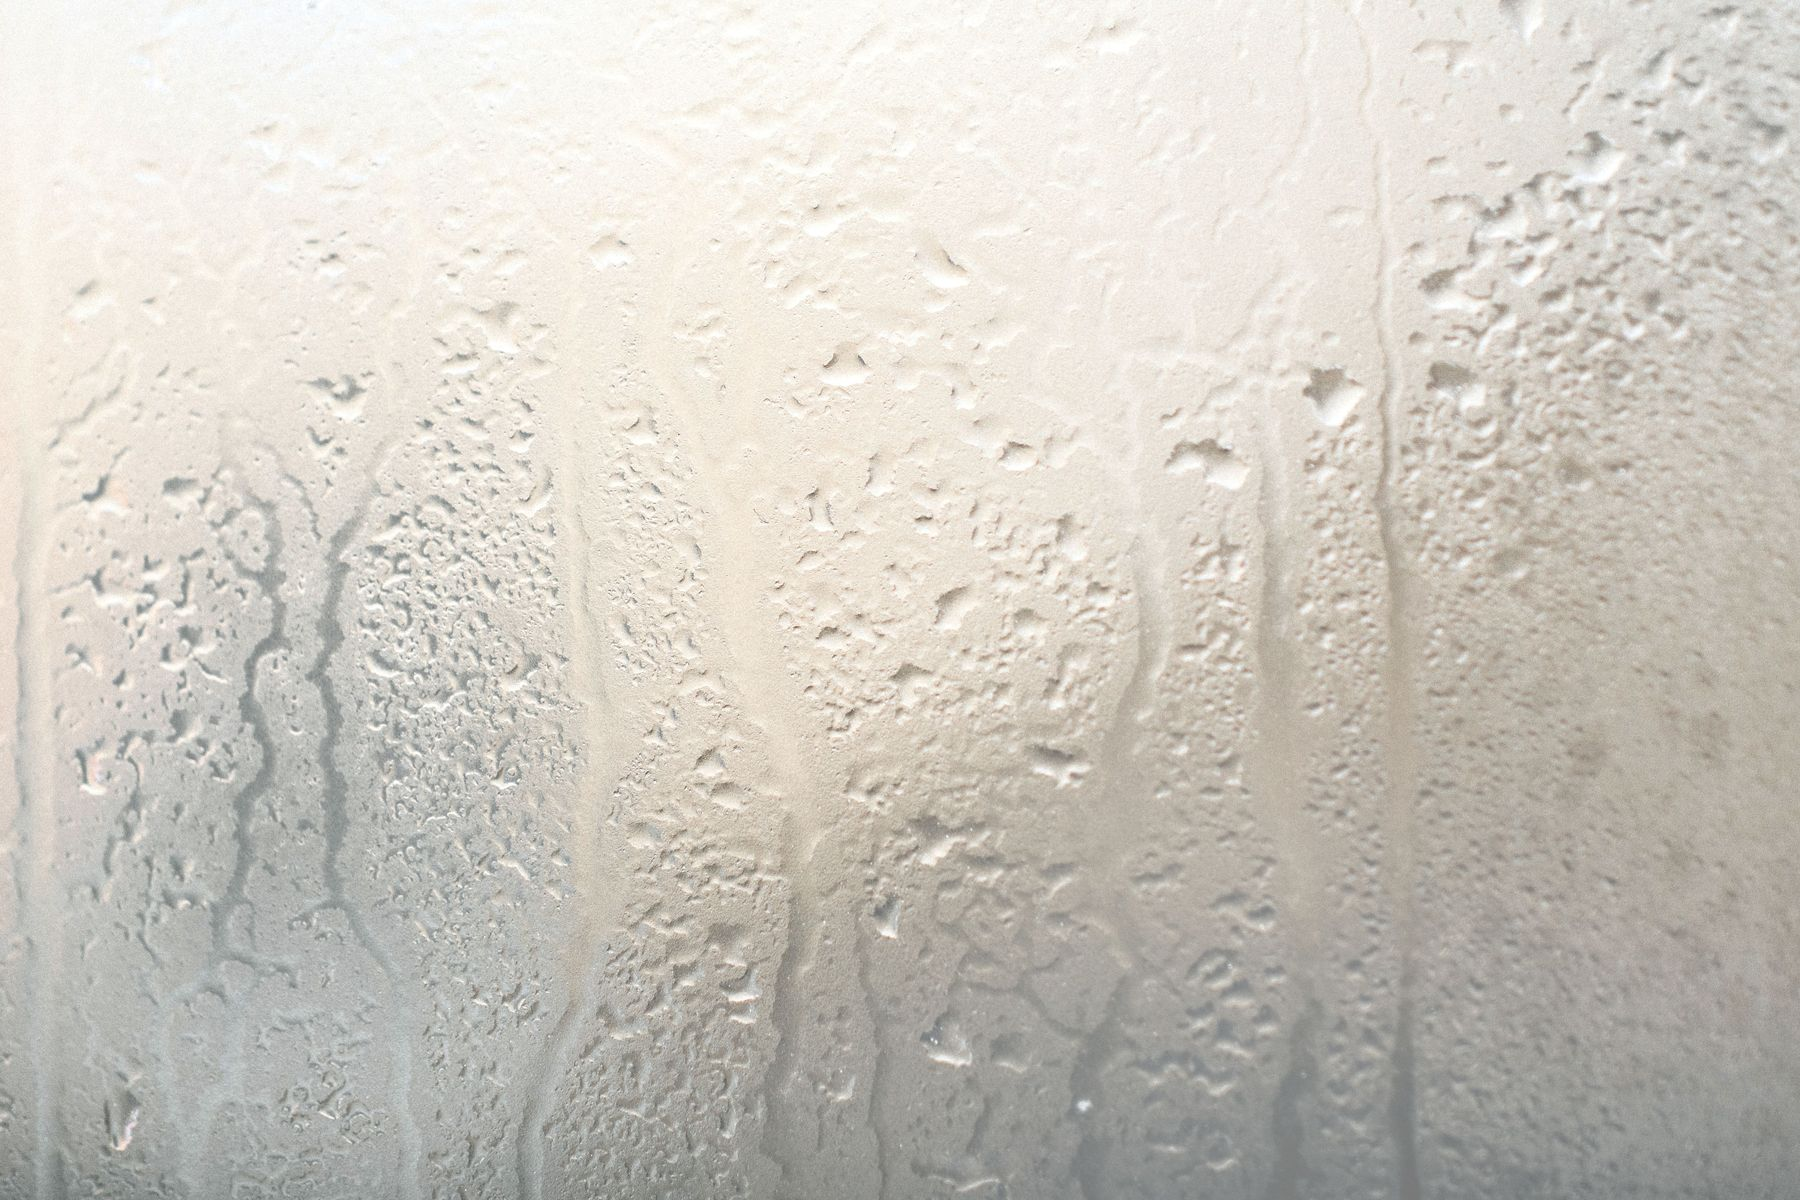 close up of condensation on windows